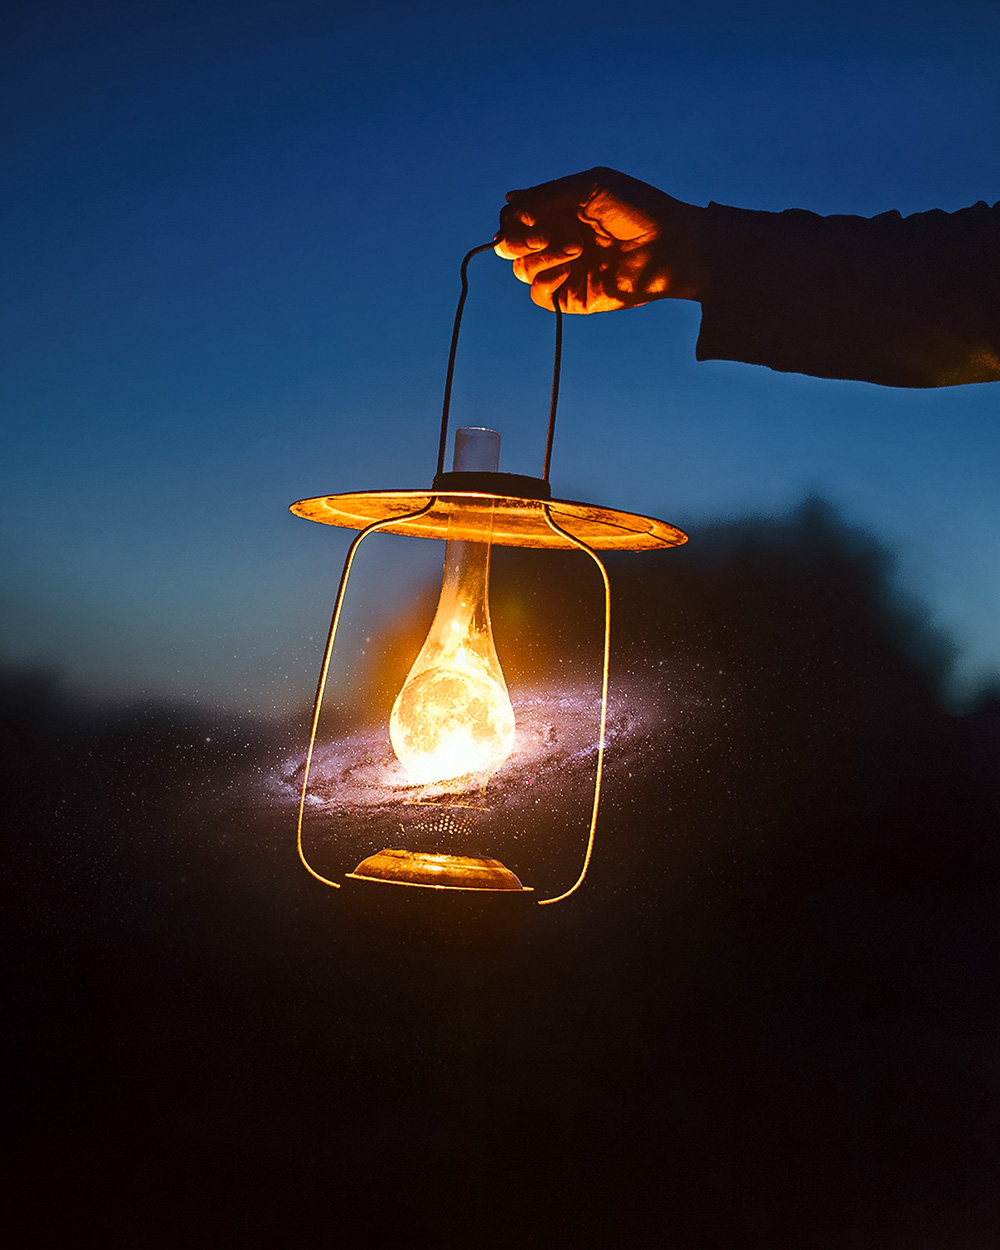 man holding the old lamp with a candle outdoors. hand holds a la